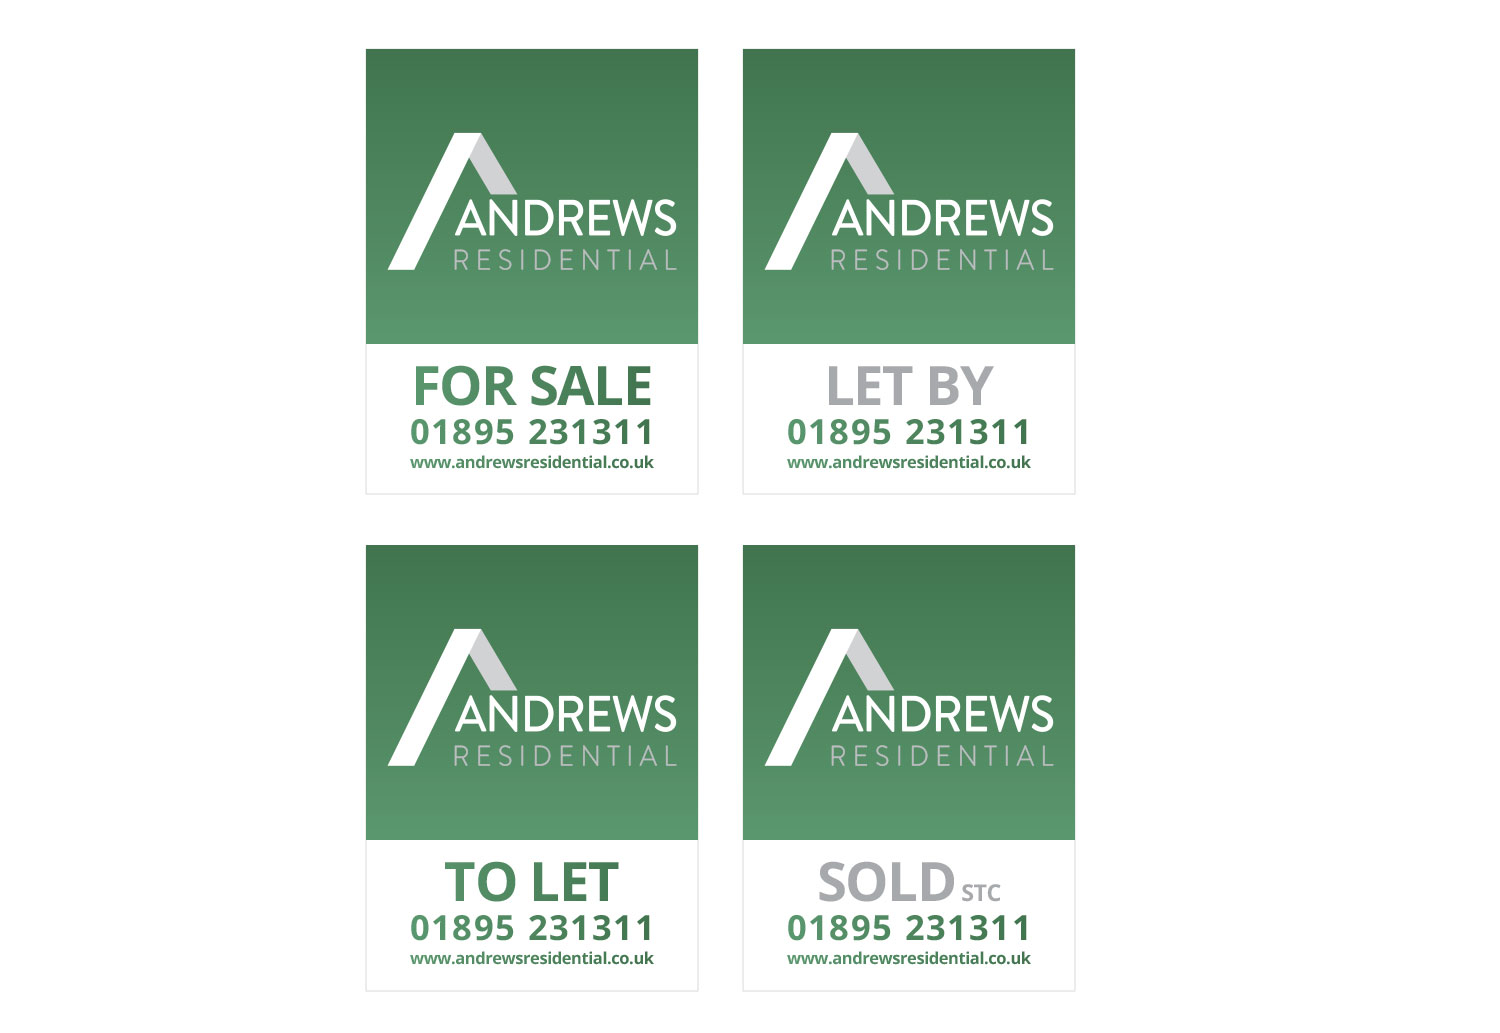 Andrews Residential Boards